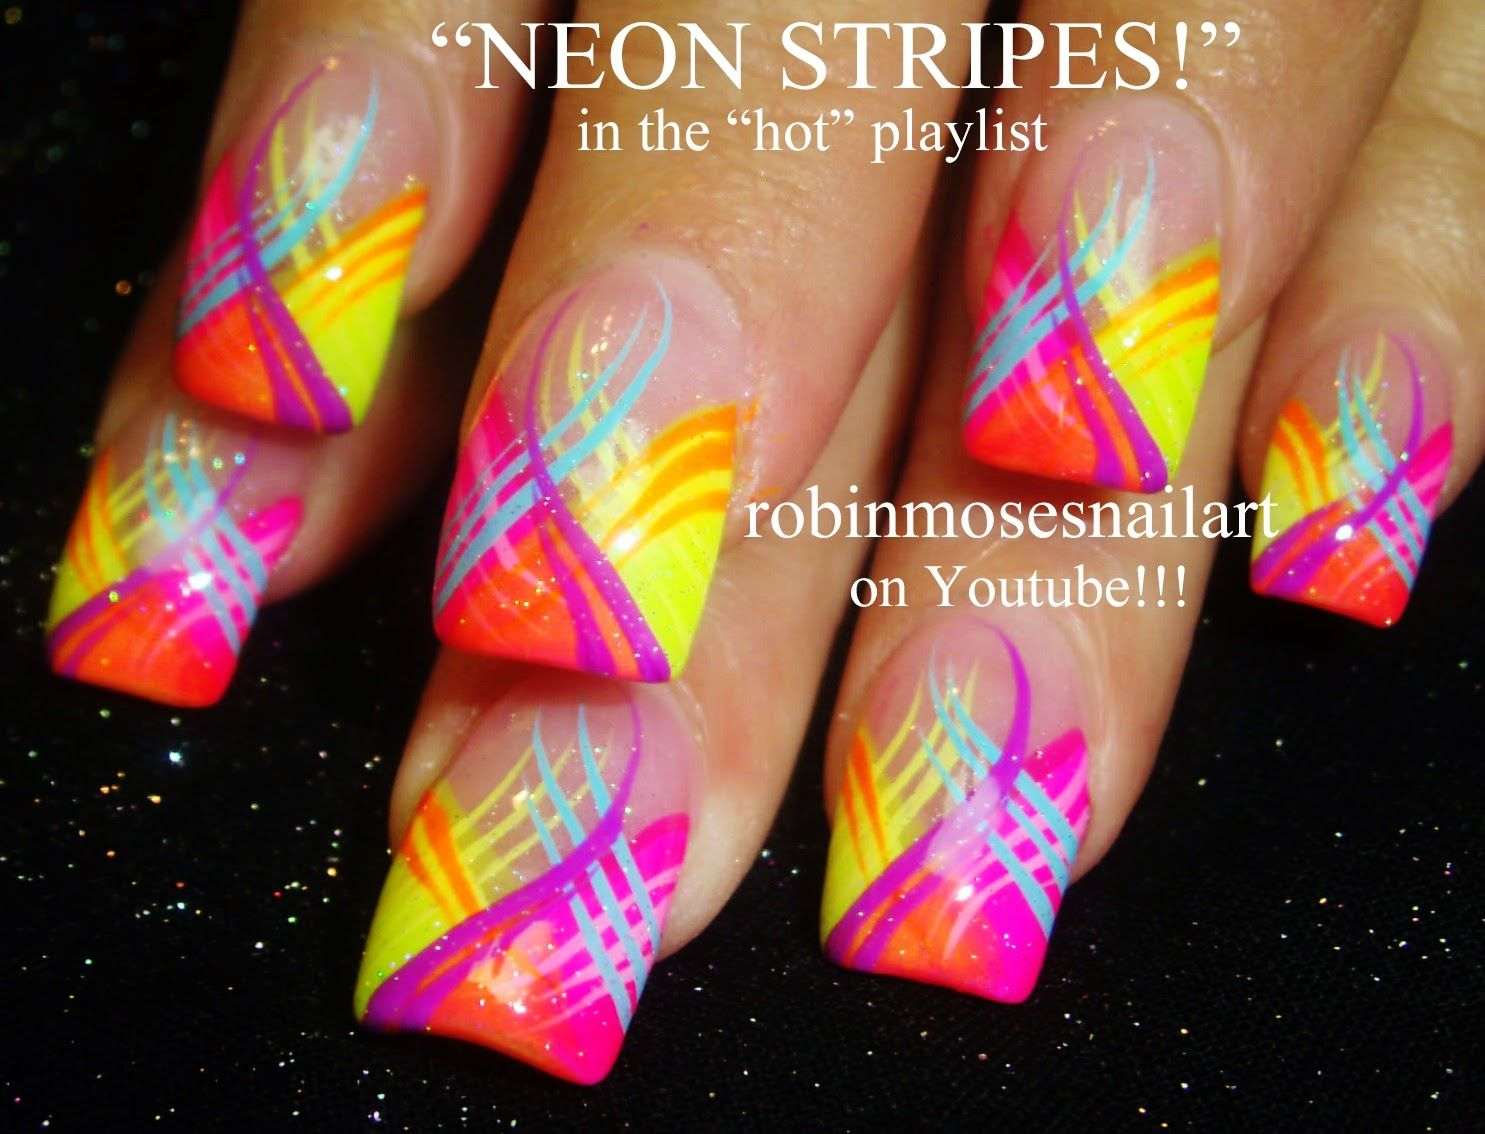 Pin by Elizabeth Gibbs on Nail design | Pinterest | Spring nails ...